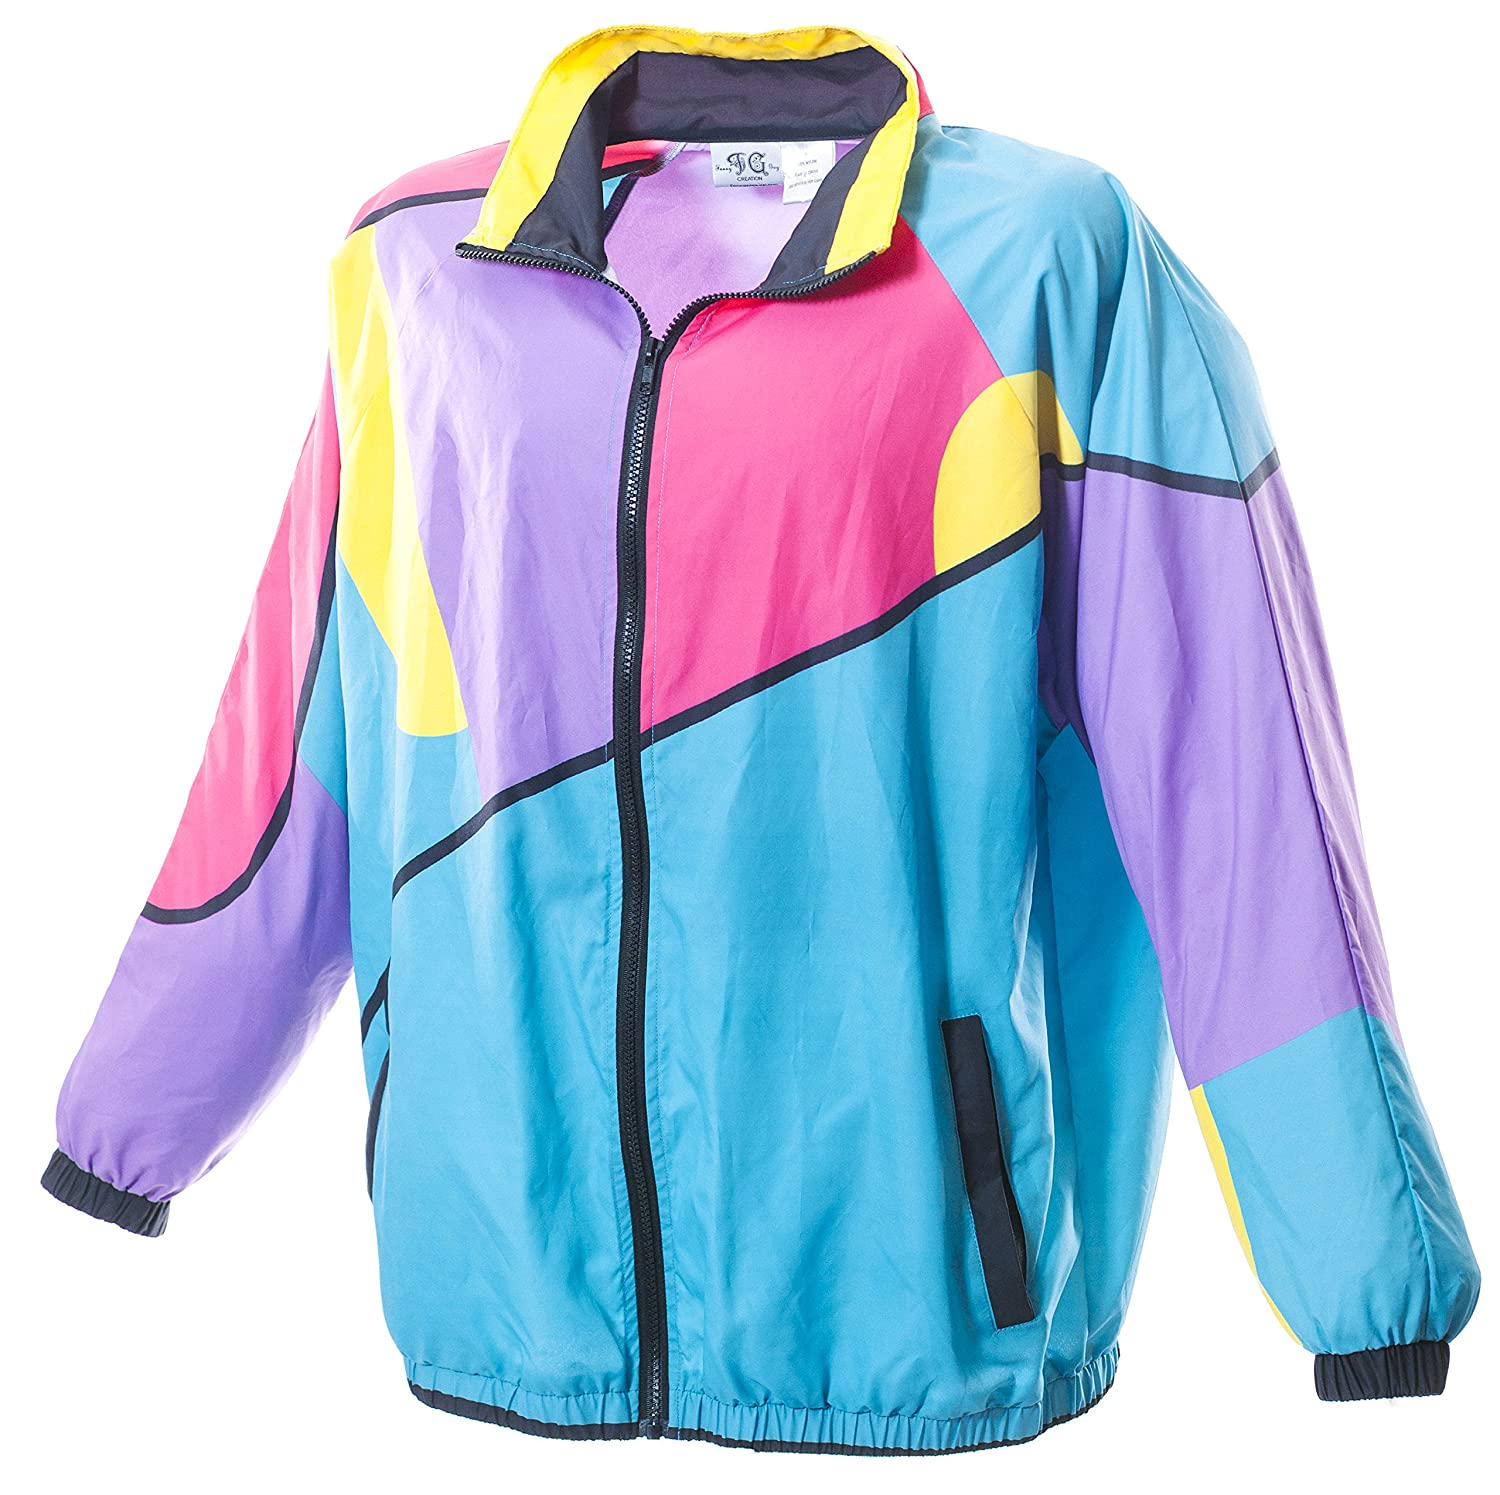 60s 70s Men's Jackets & Sweaters Funny Guy Mugs 80s & 90s Retro Neon Windbreakers $49.99 AT vintagedancer.com